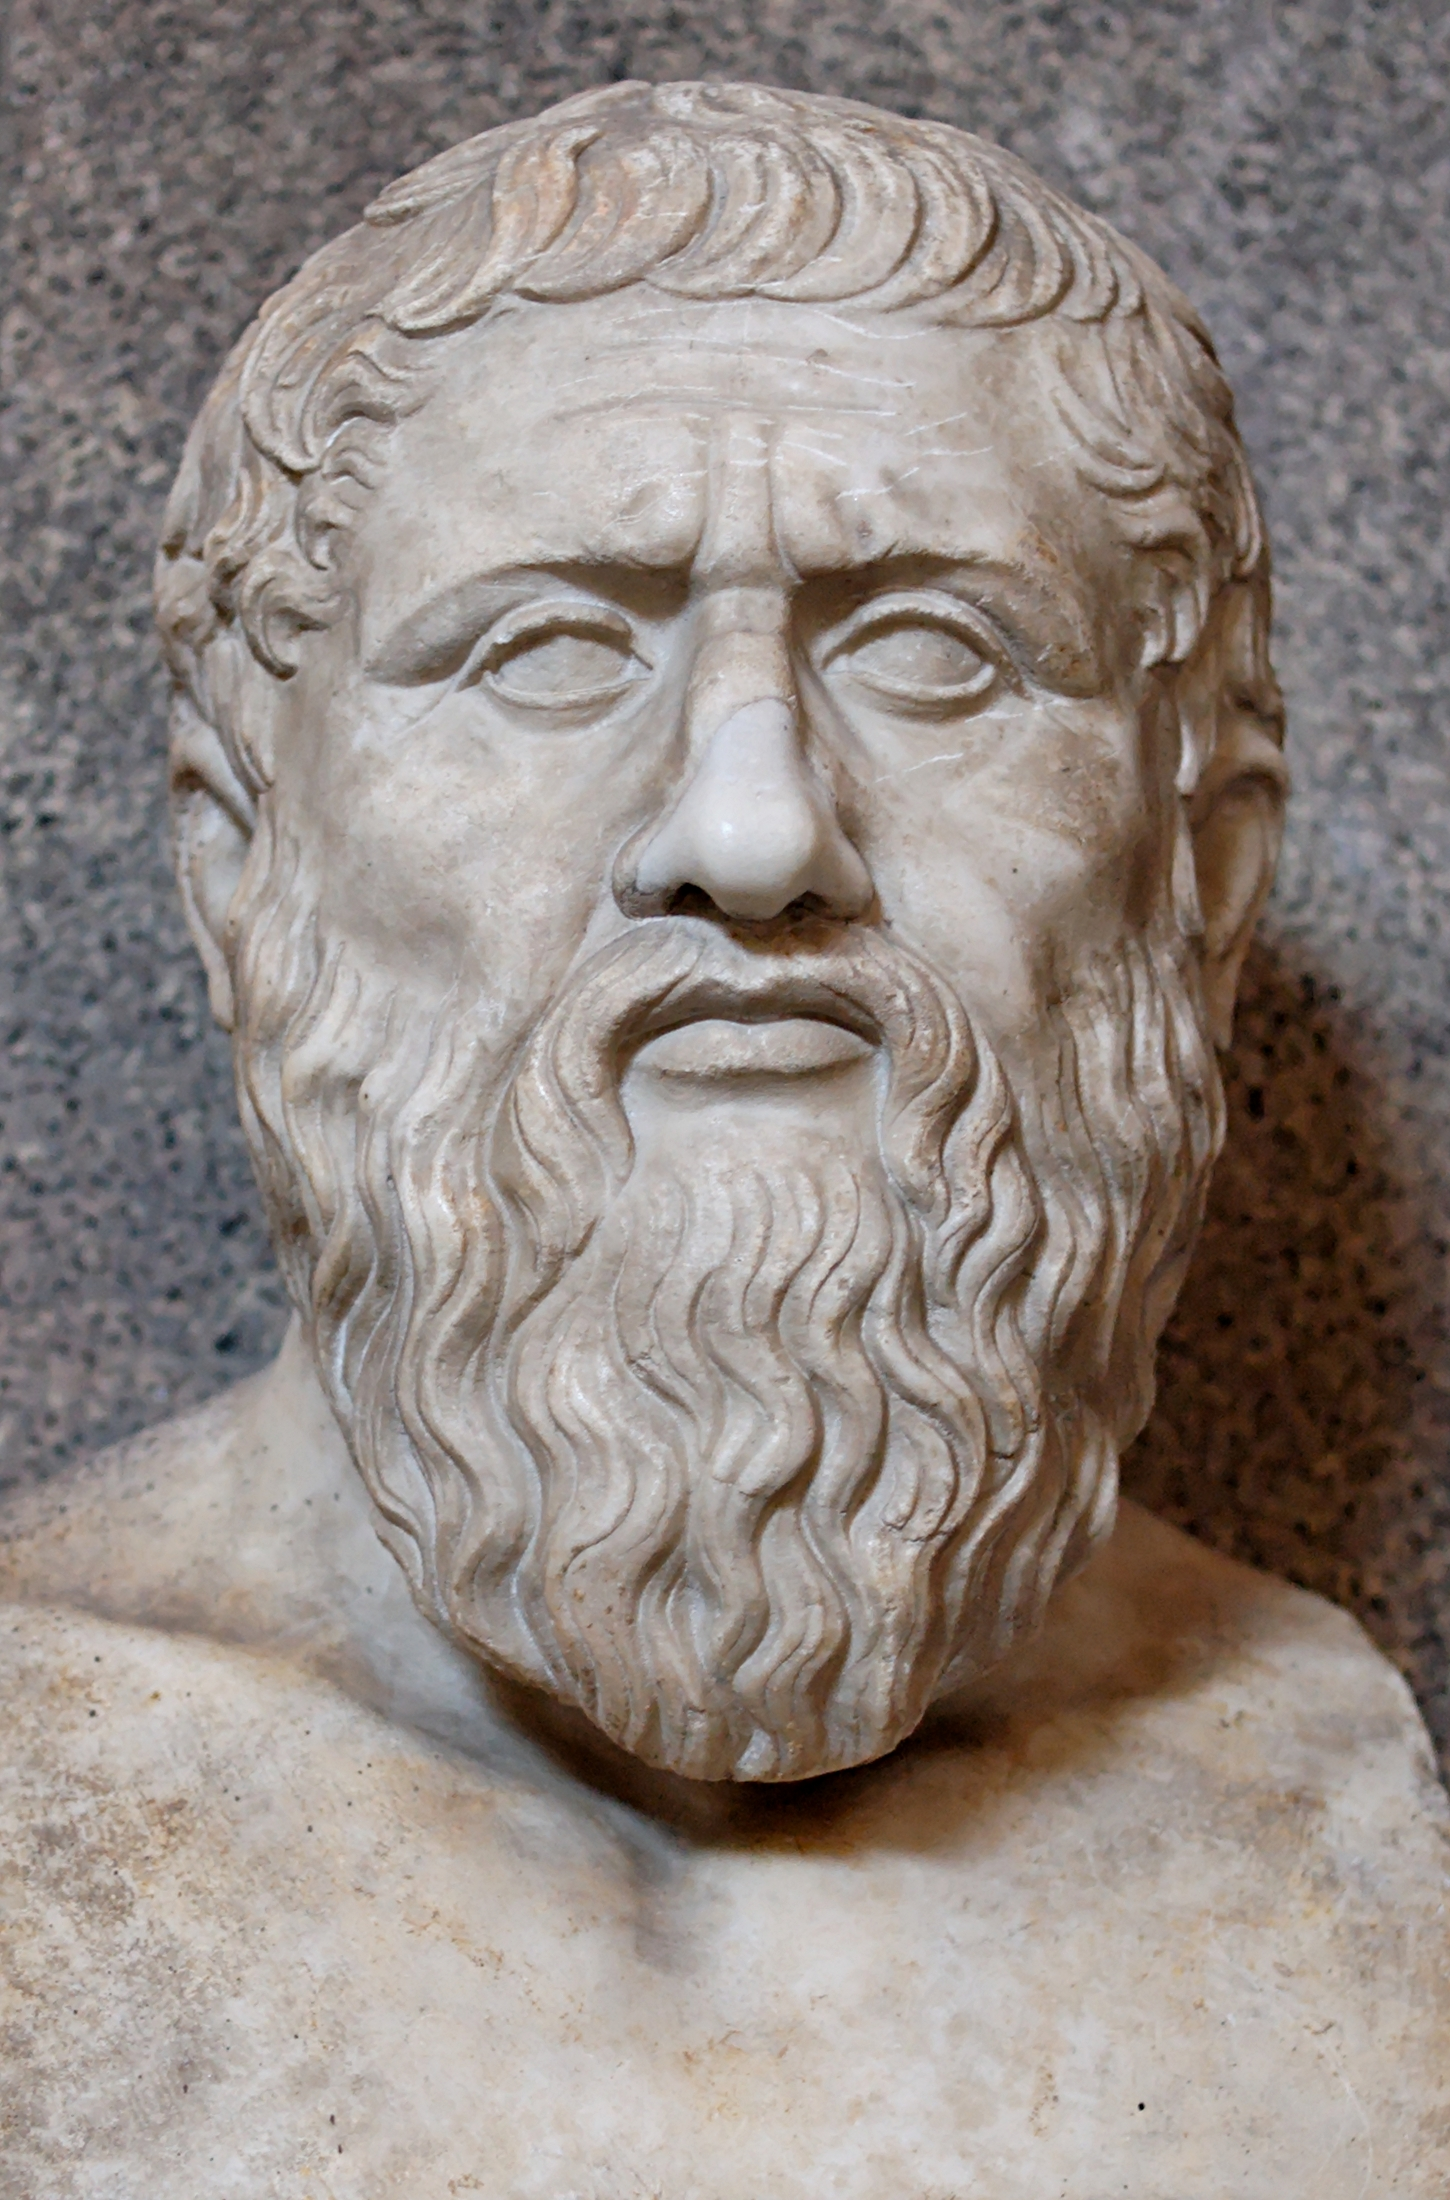 Plato Net Worth